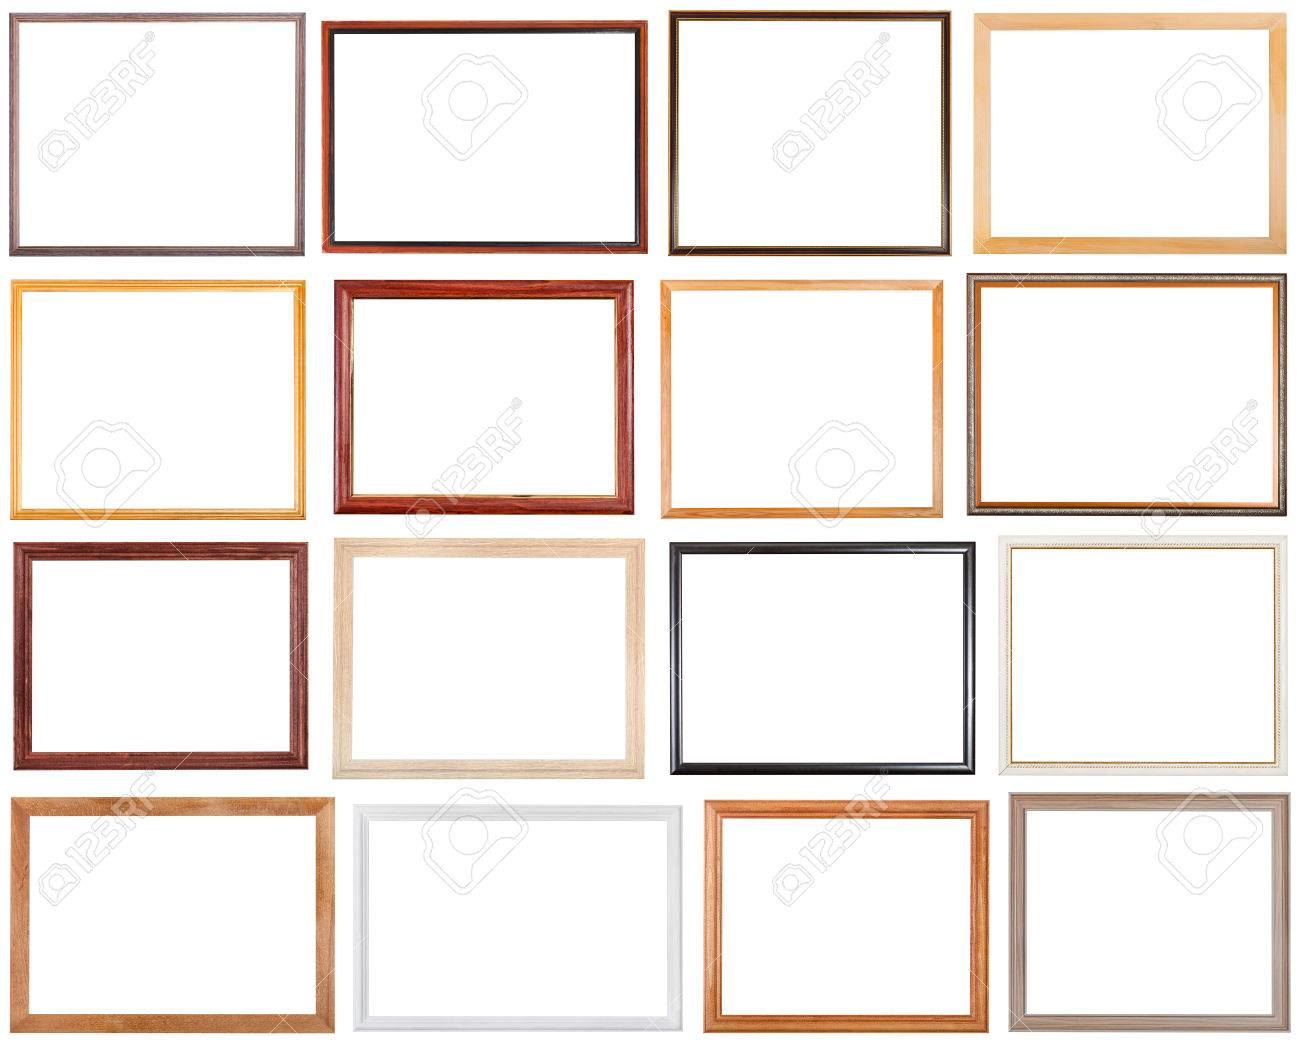 set of 16 pcs narrow wooden picture frames with cut out blank space isolated on white background - 42698804